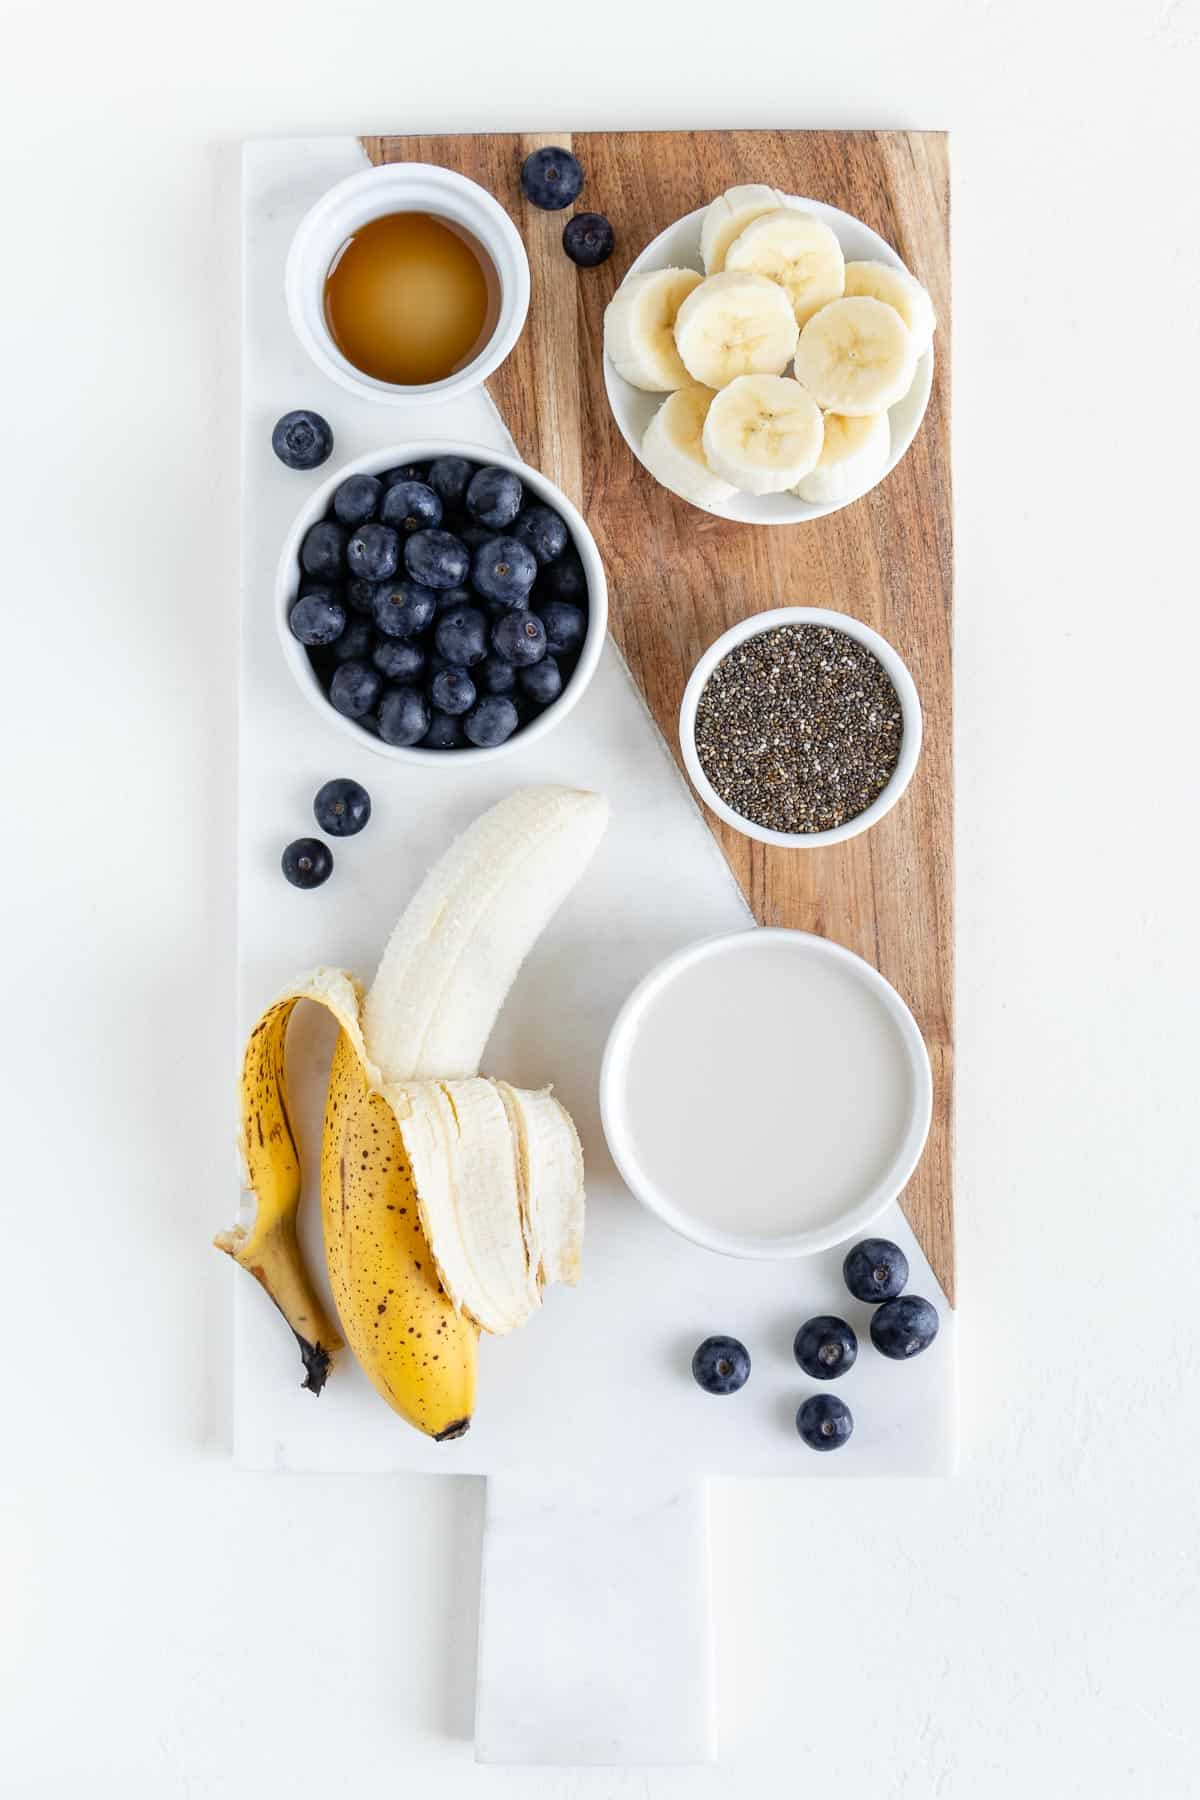 a ripe banana, a bowl of blueberries, a bowl of chia seeds, a glass of almond milk, and a bowl of sliced bananas on a marble cutting board